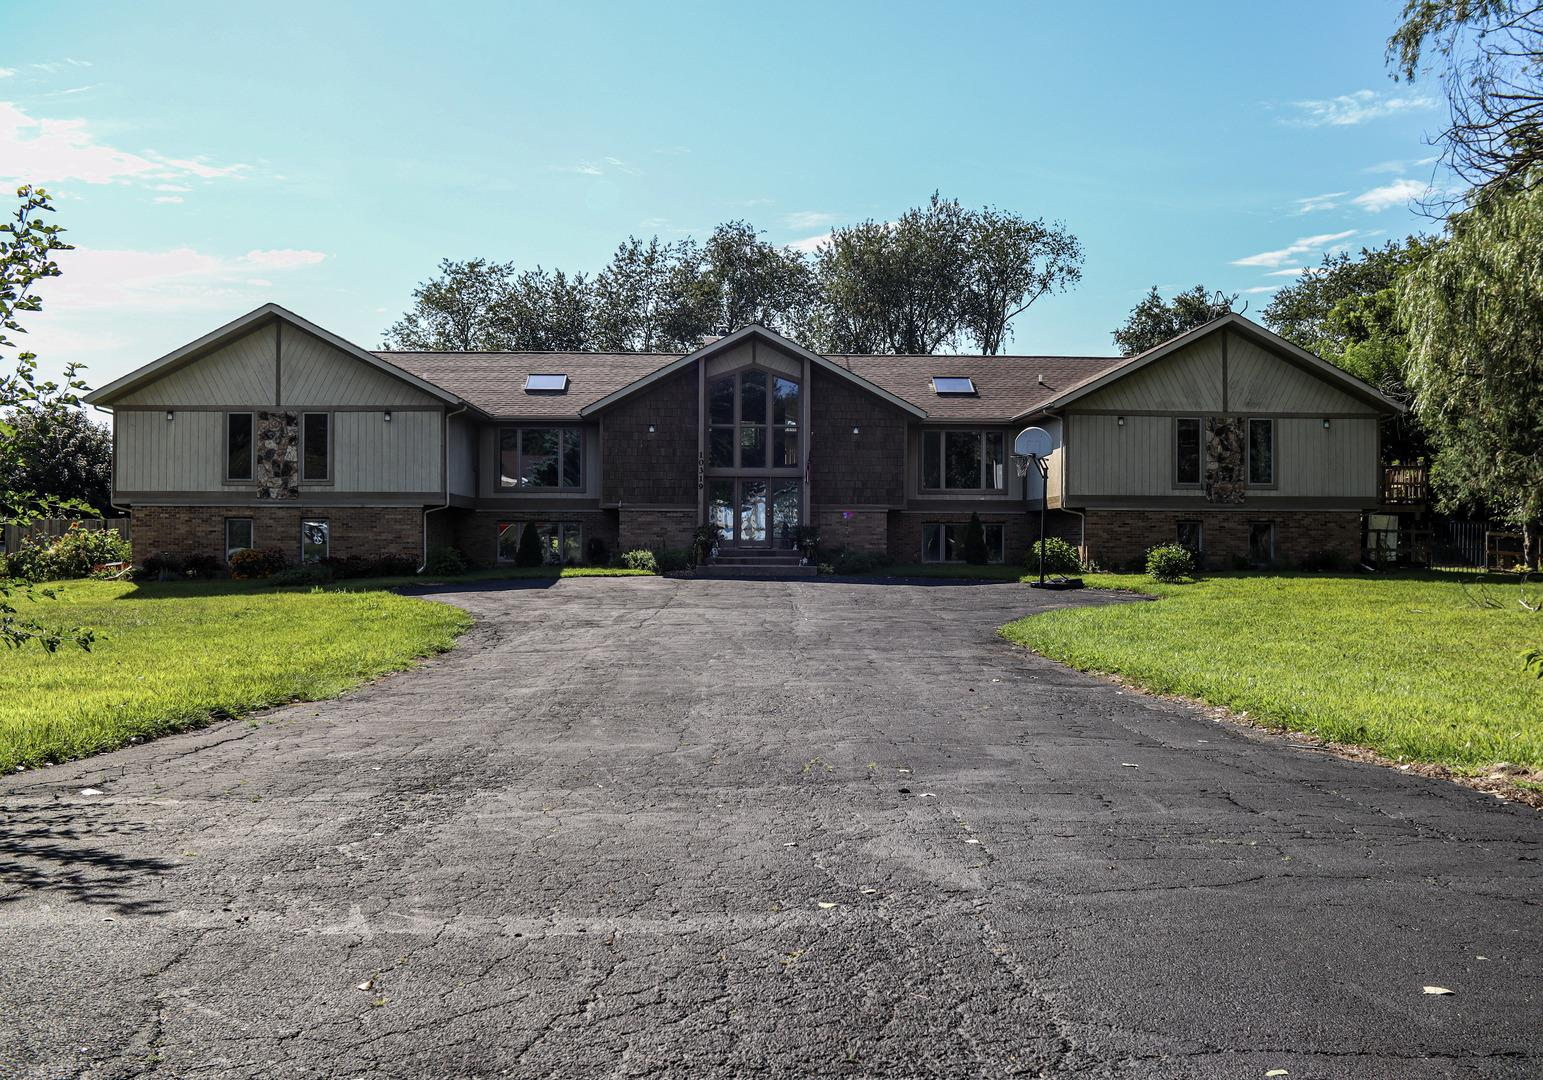 10319 Ridge Lane, Marengo, IL 60152 - #: 10818002